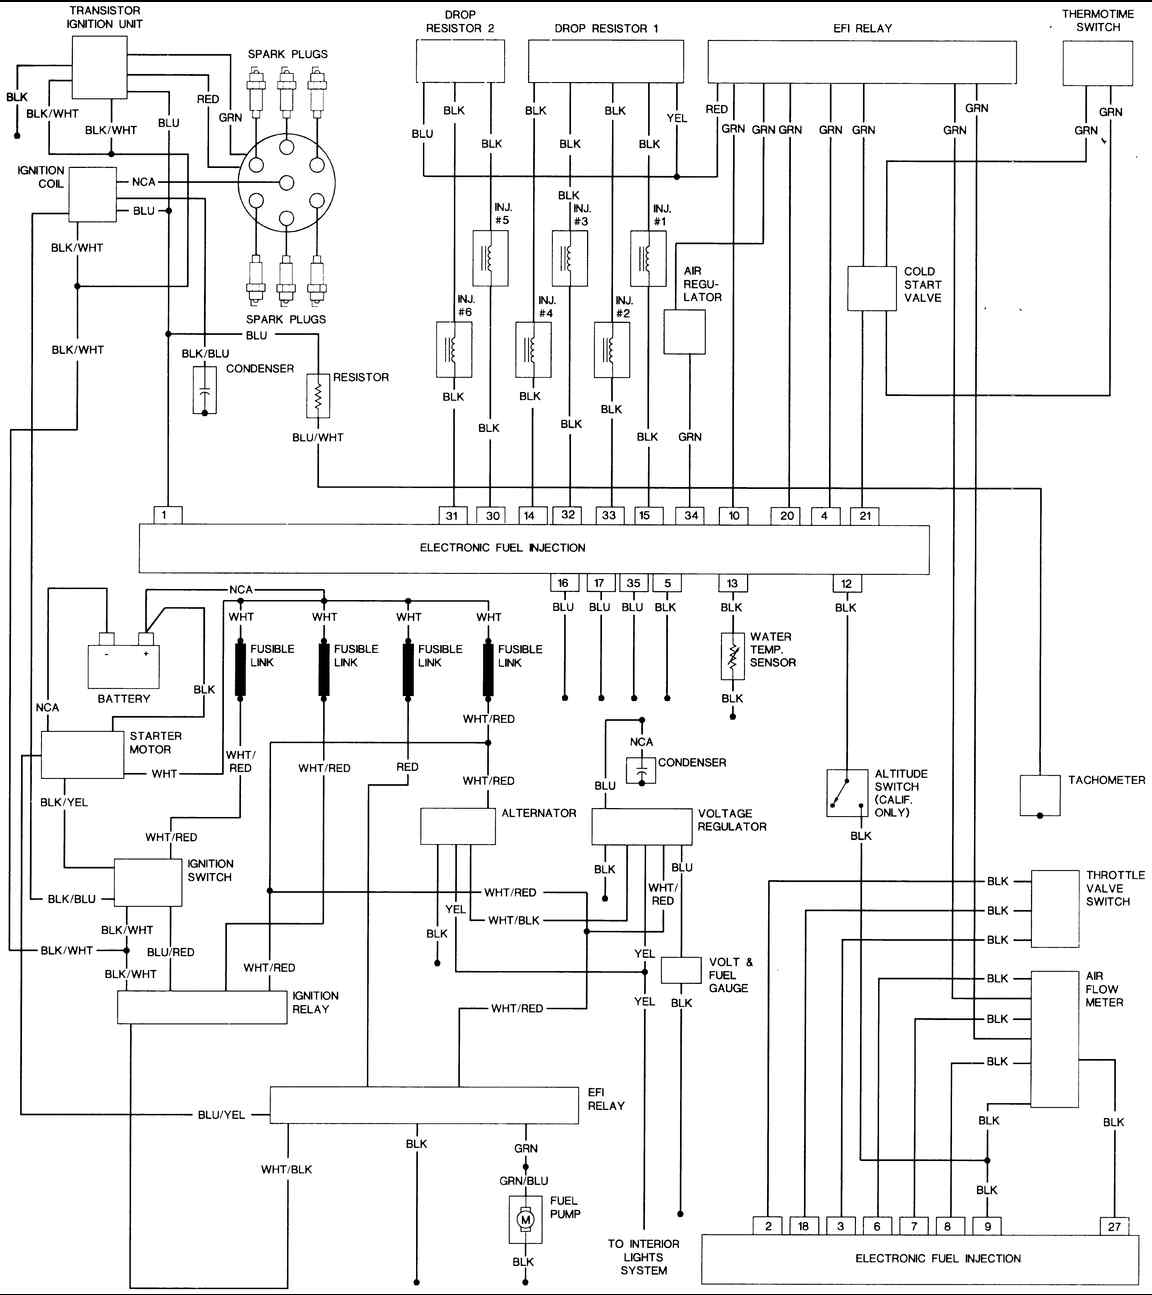 1976 280z wiring diagram